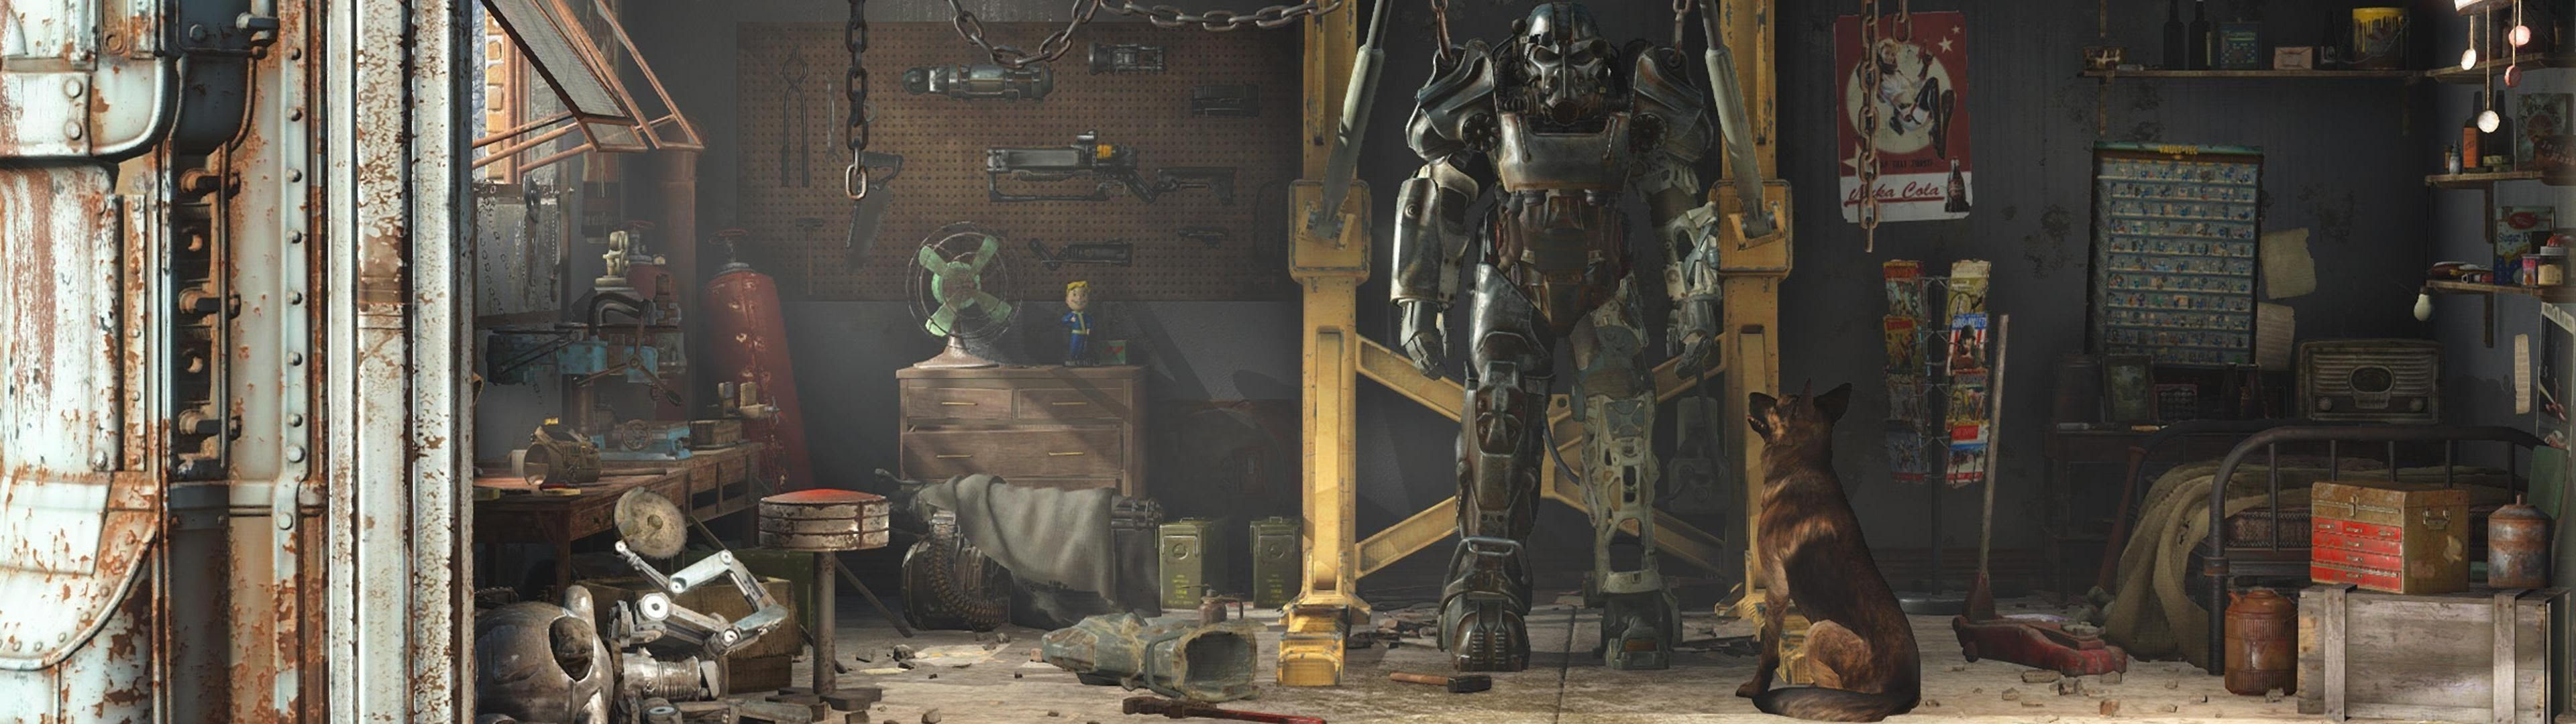 Fallout 4 Dual Monitor Wallpaper 63 Images